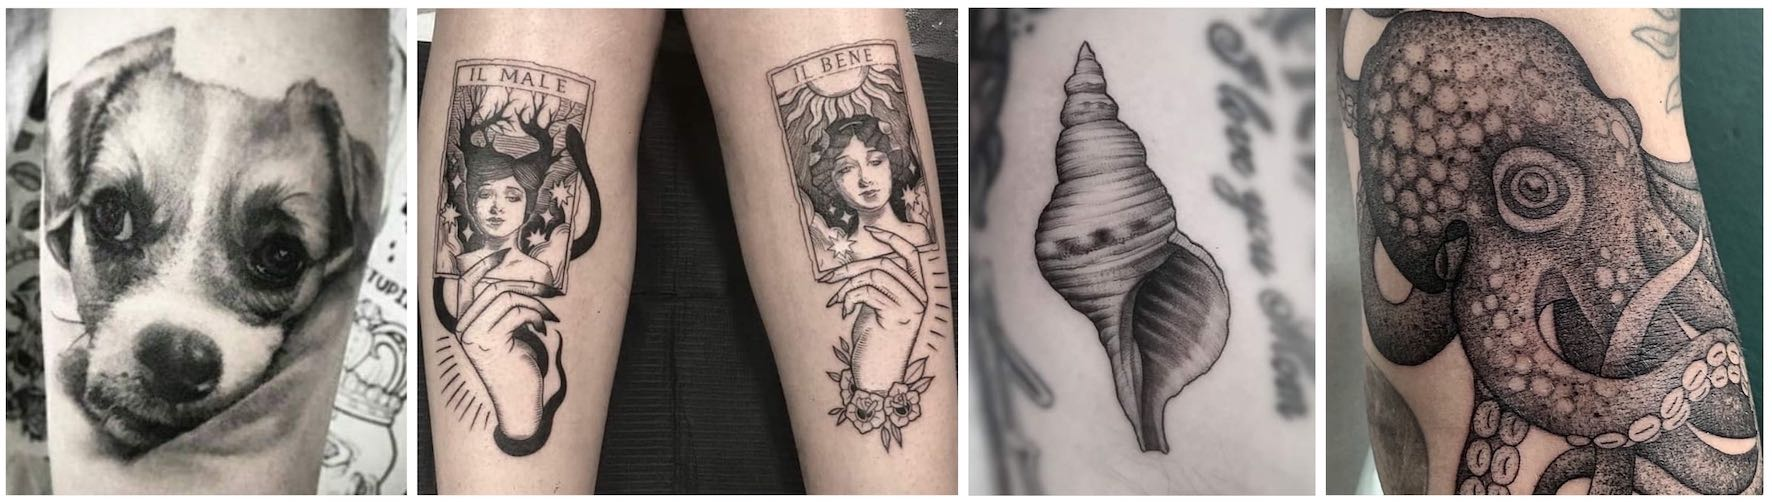 Tattoos done by Rebecca Claxton